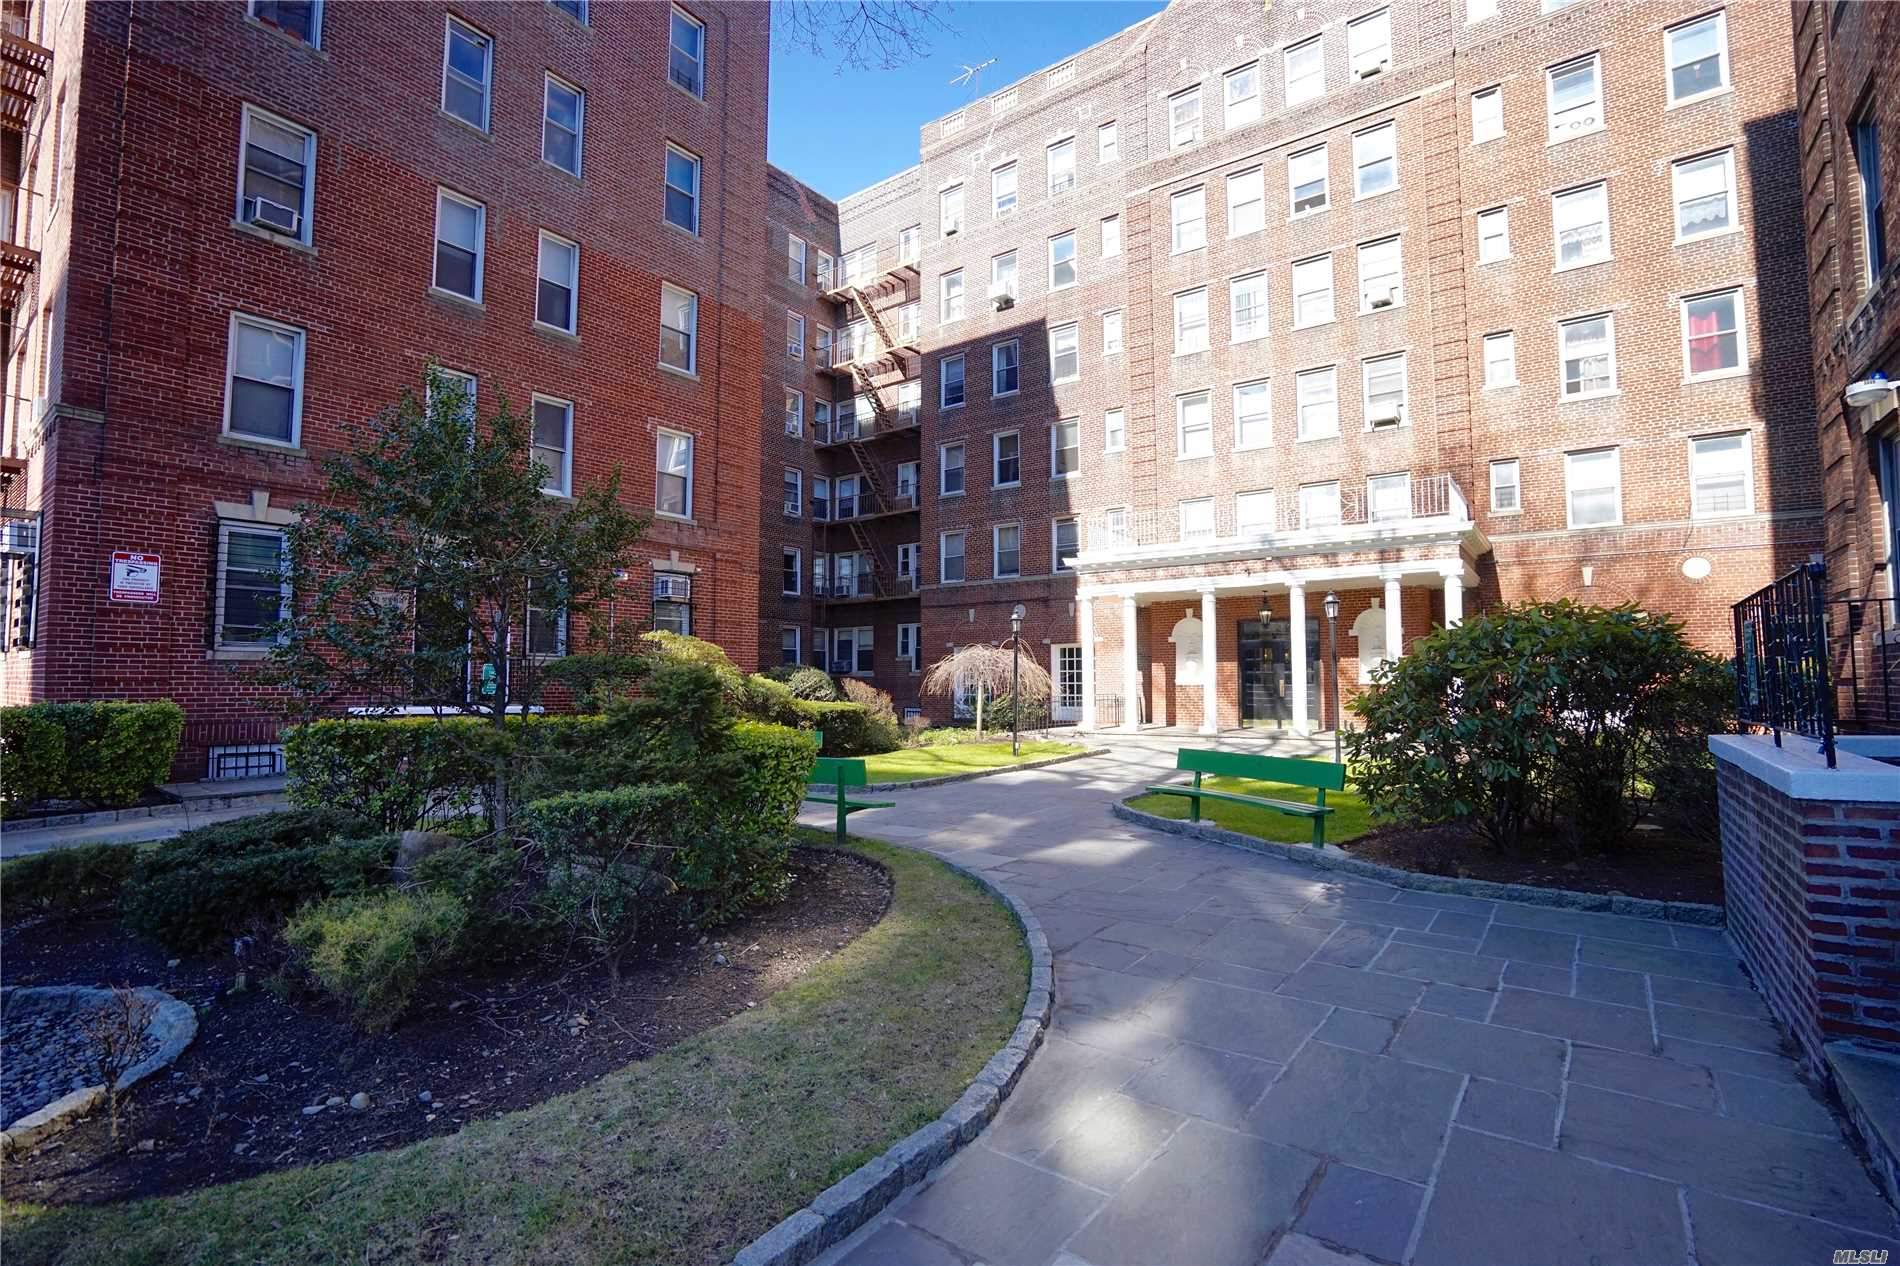 Excellent Condition Large 1 Bedroom Northgate Tower Coop. All Hardwood Floor. Eat In Kitchen. Large Bedroom And Living Room. 2 Elevator For Each Side Of Building. Quiet. Location Is Good To Commute To Lirr & Train. Well Maintained And Clean. Bus Station Right Front Of Building. Market Across The Street.